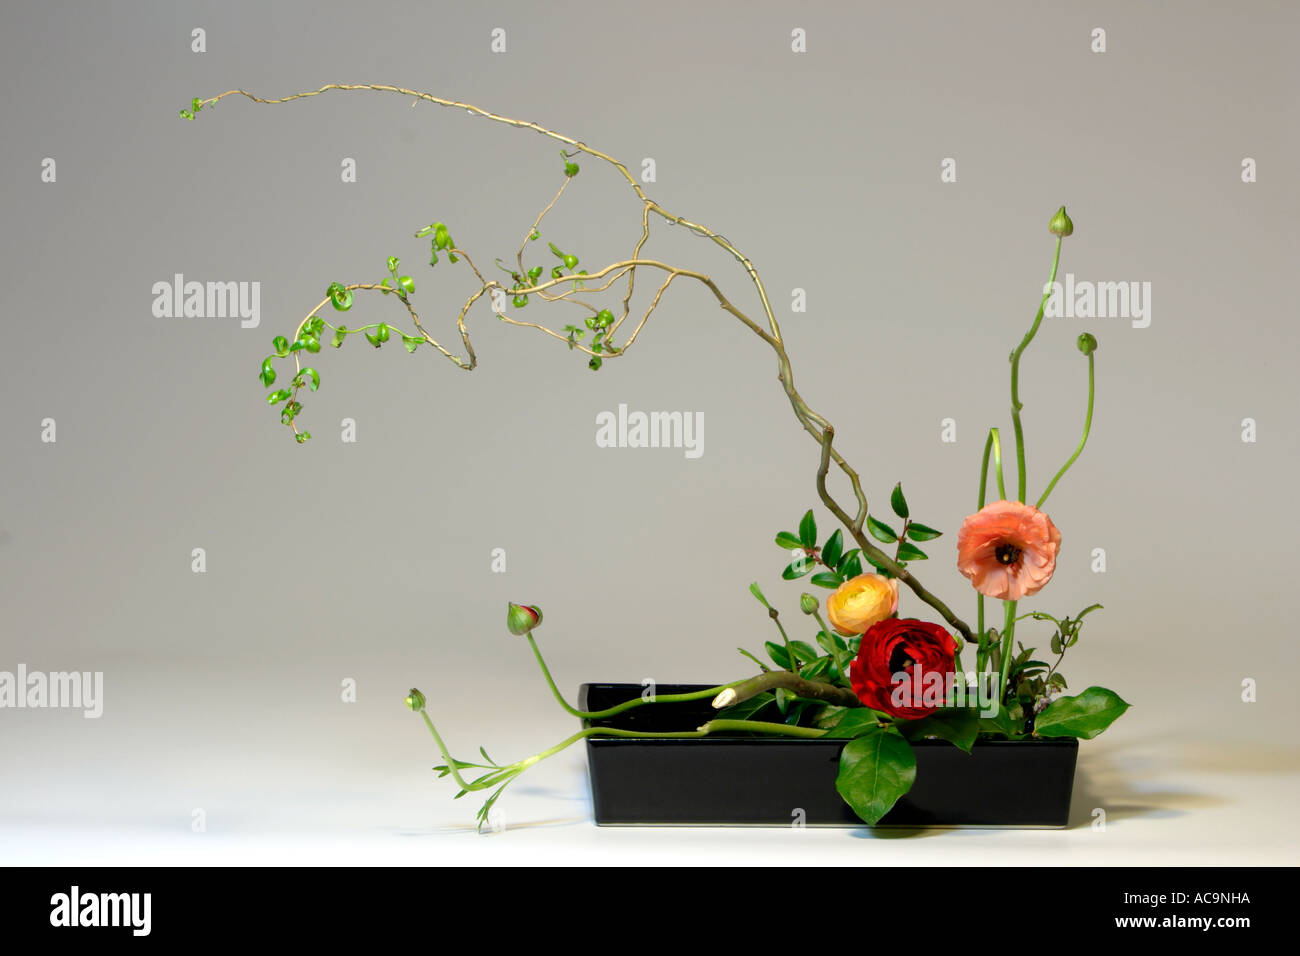 ikebana mit camelia blumen und curly willow stockfoto. Black Bedroom Furniture Sets. Home Design Ideas